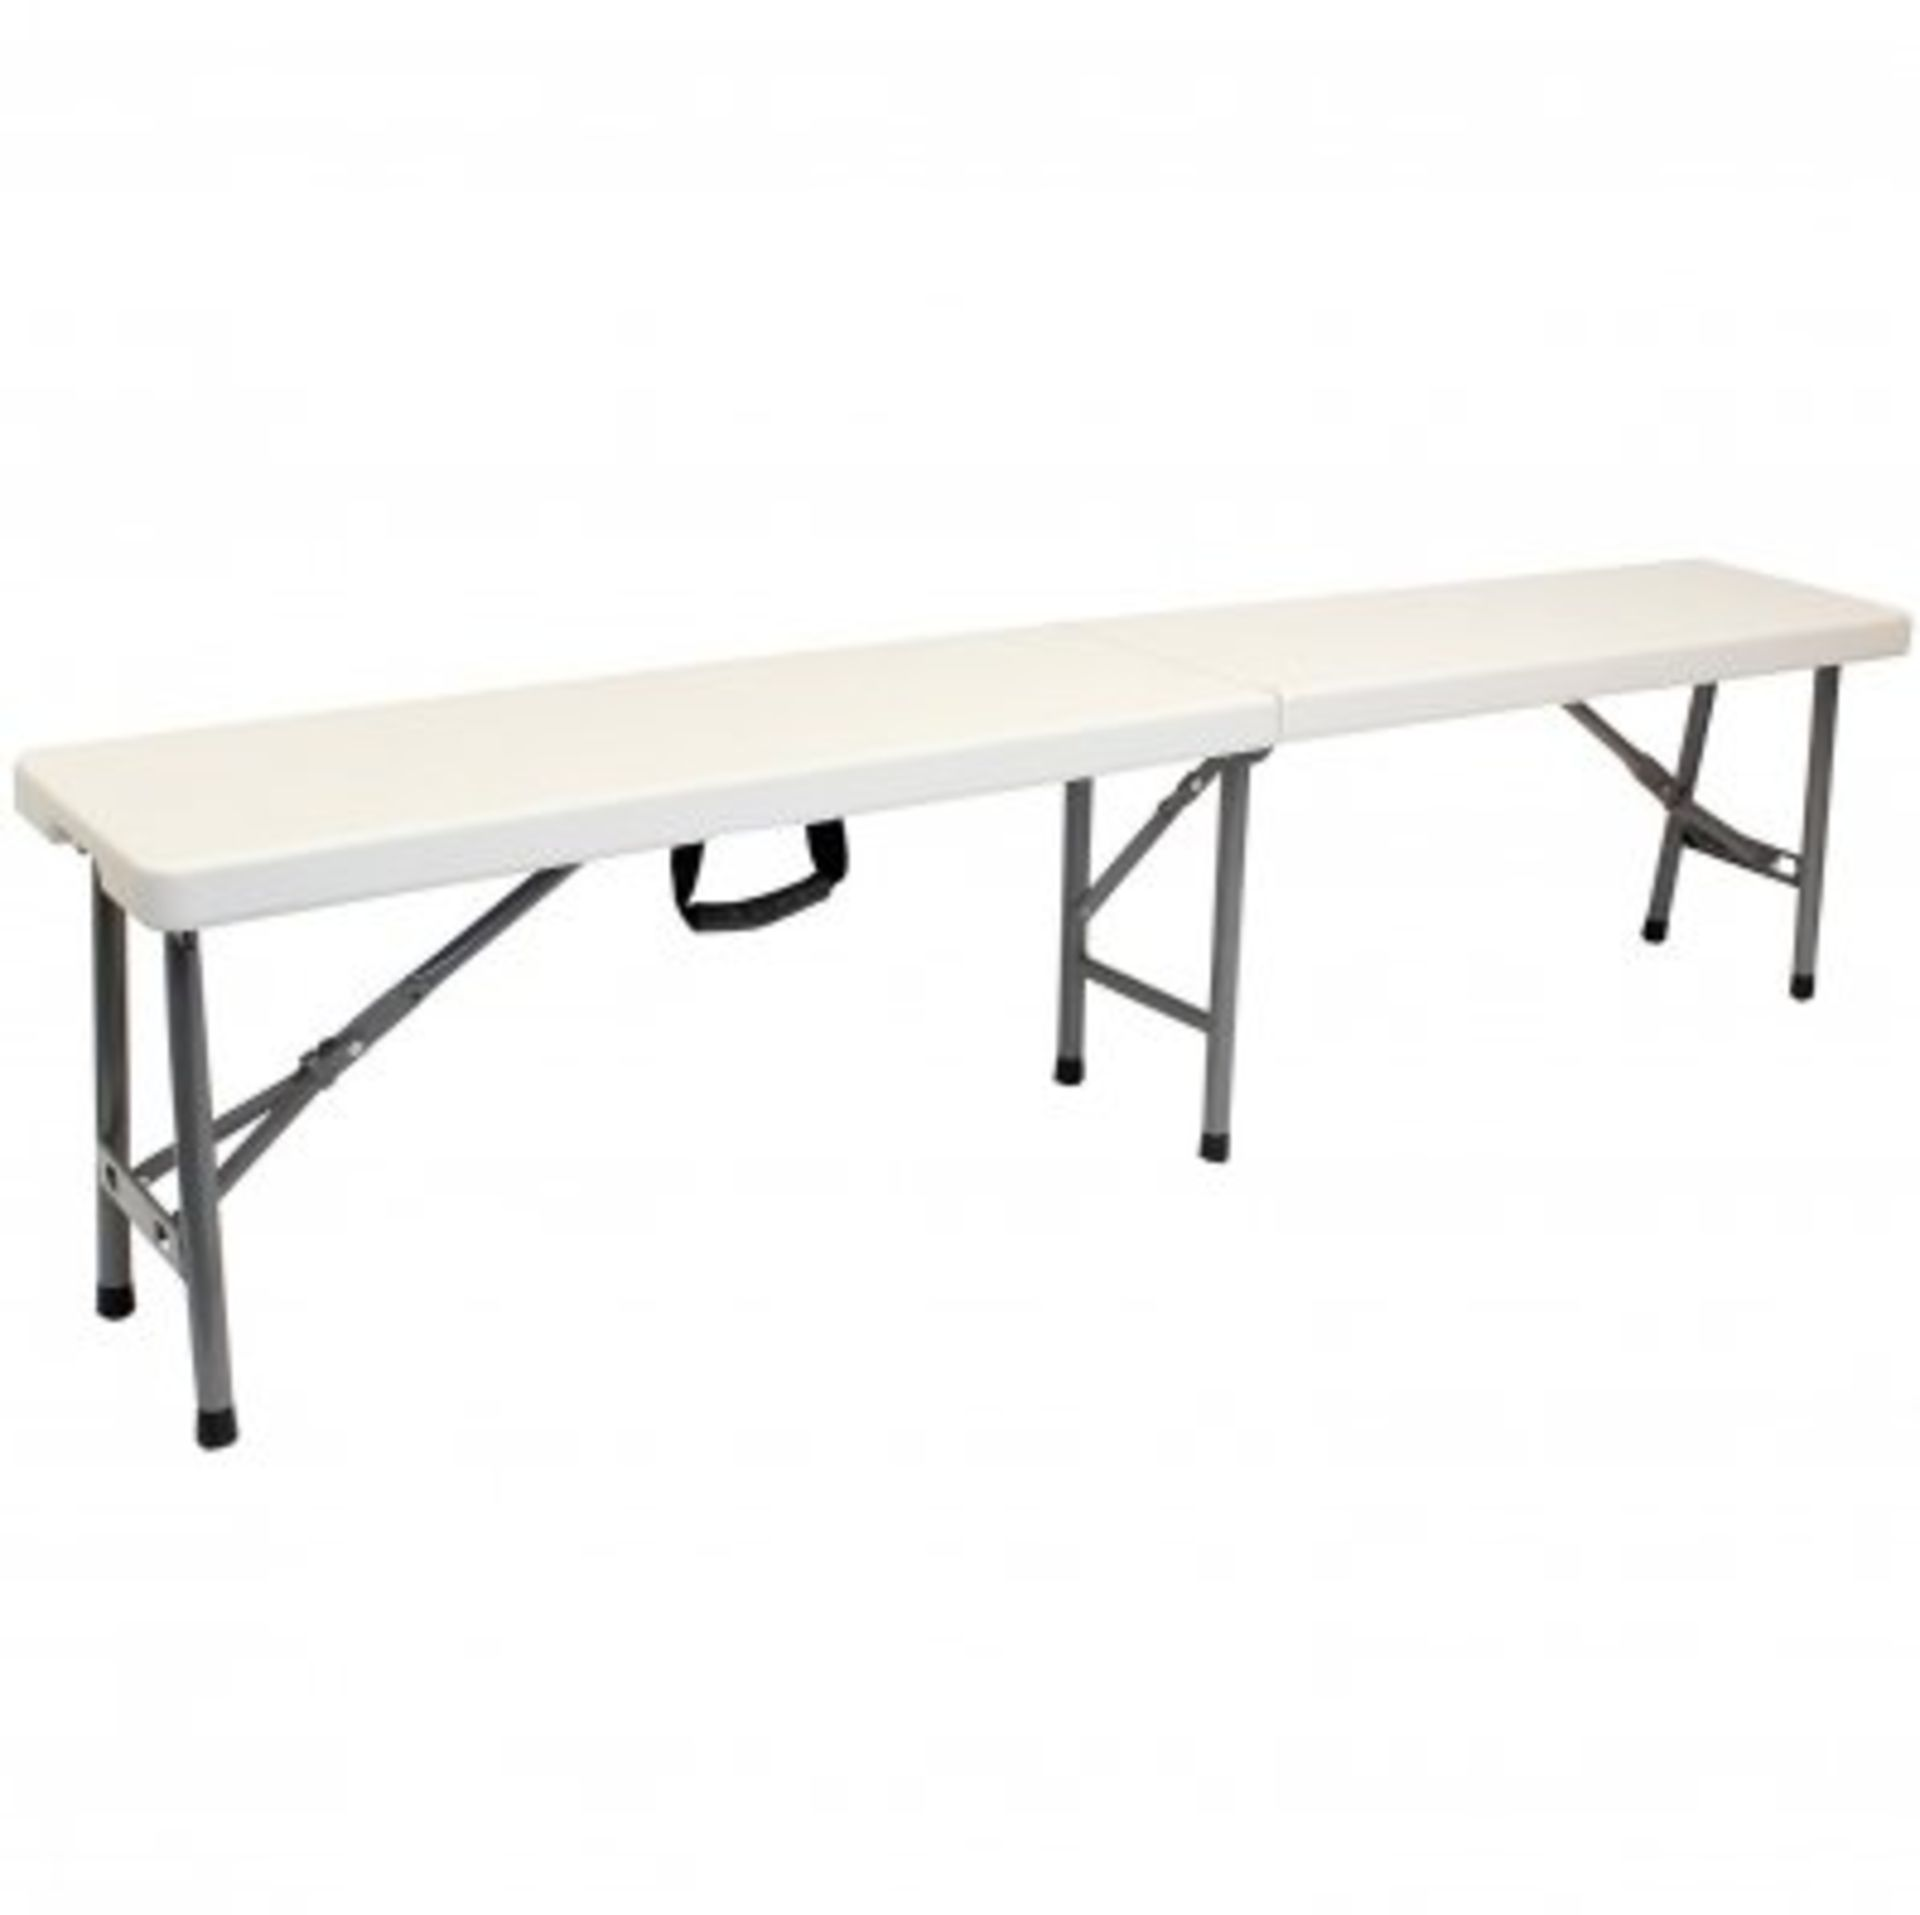 Lot 75 - (RU46) 4 person 6ft Portable Folding Heavy Duty Outdoor Trestle Bench Chair The folding tres...